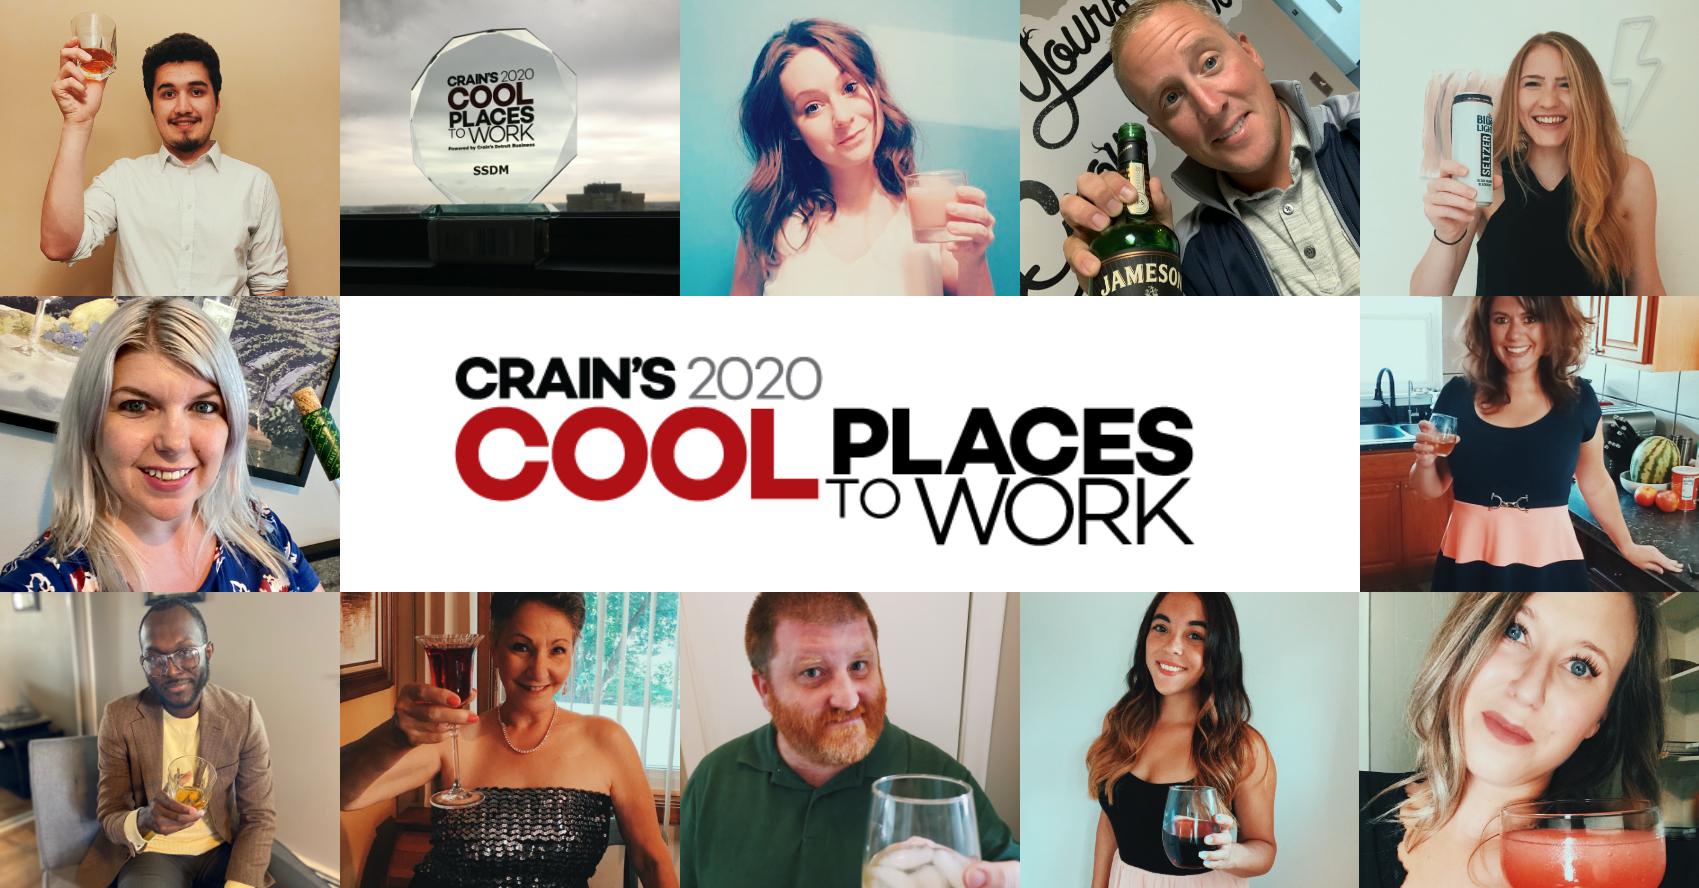 SSDM Crain's cool places to work team photo